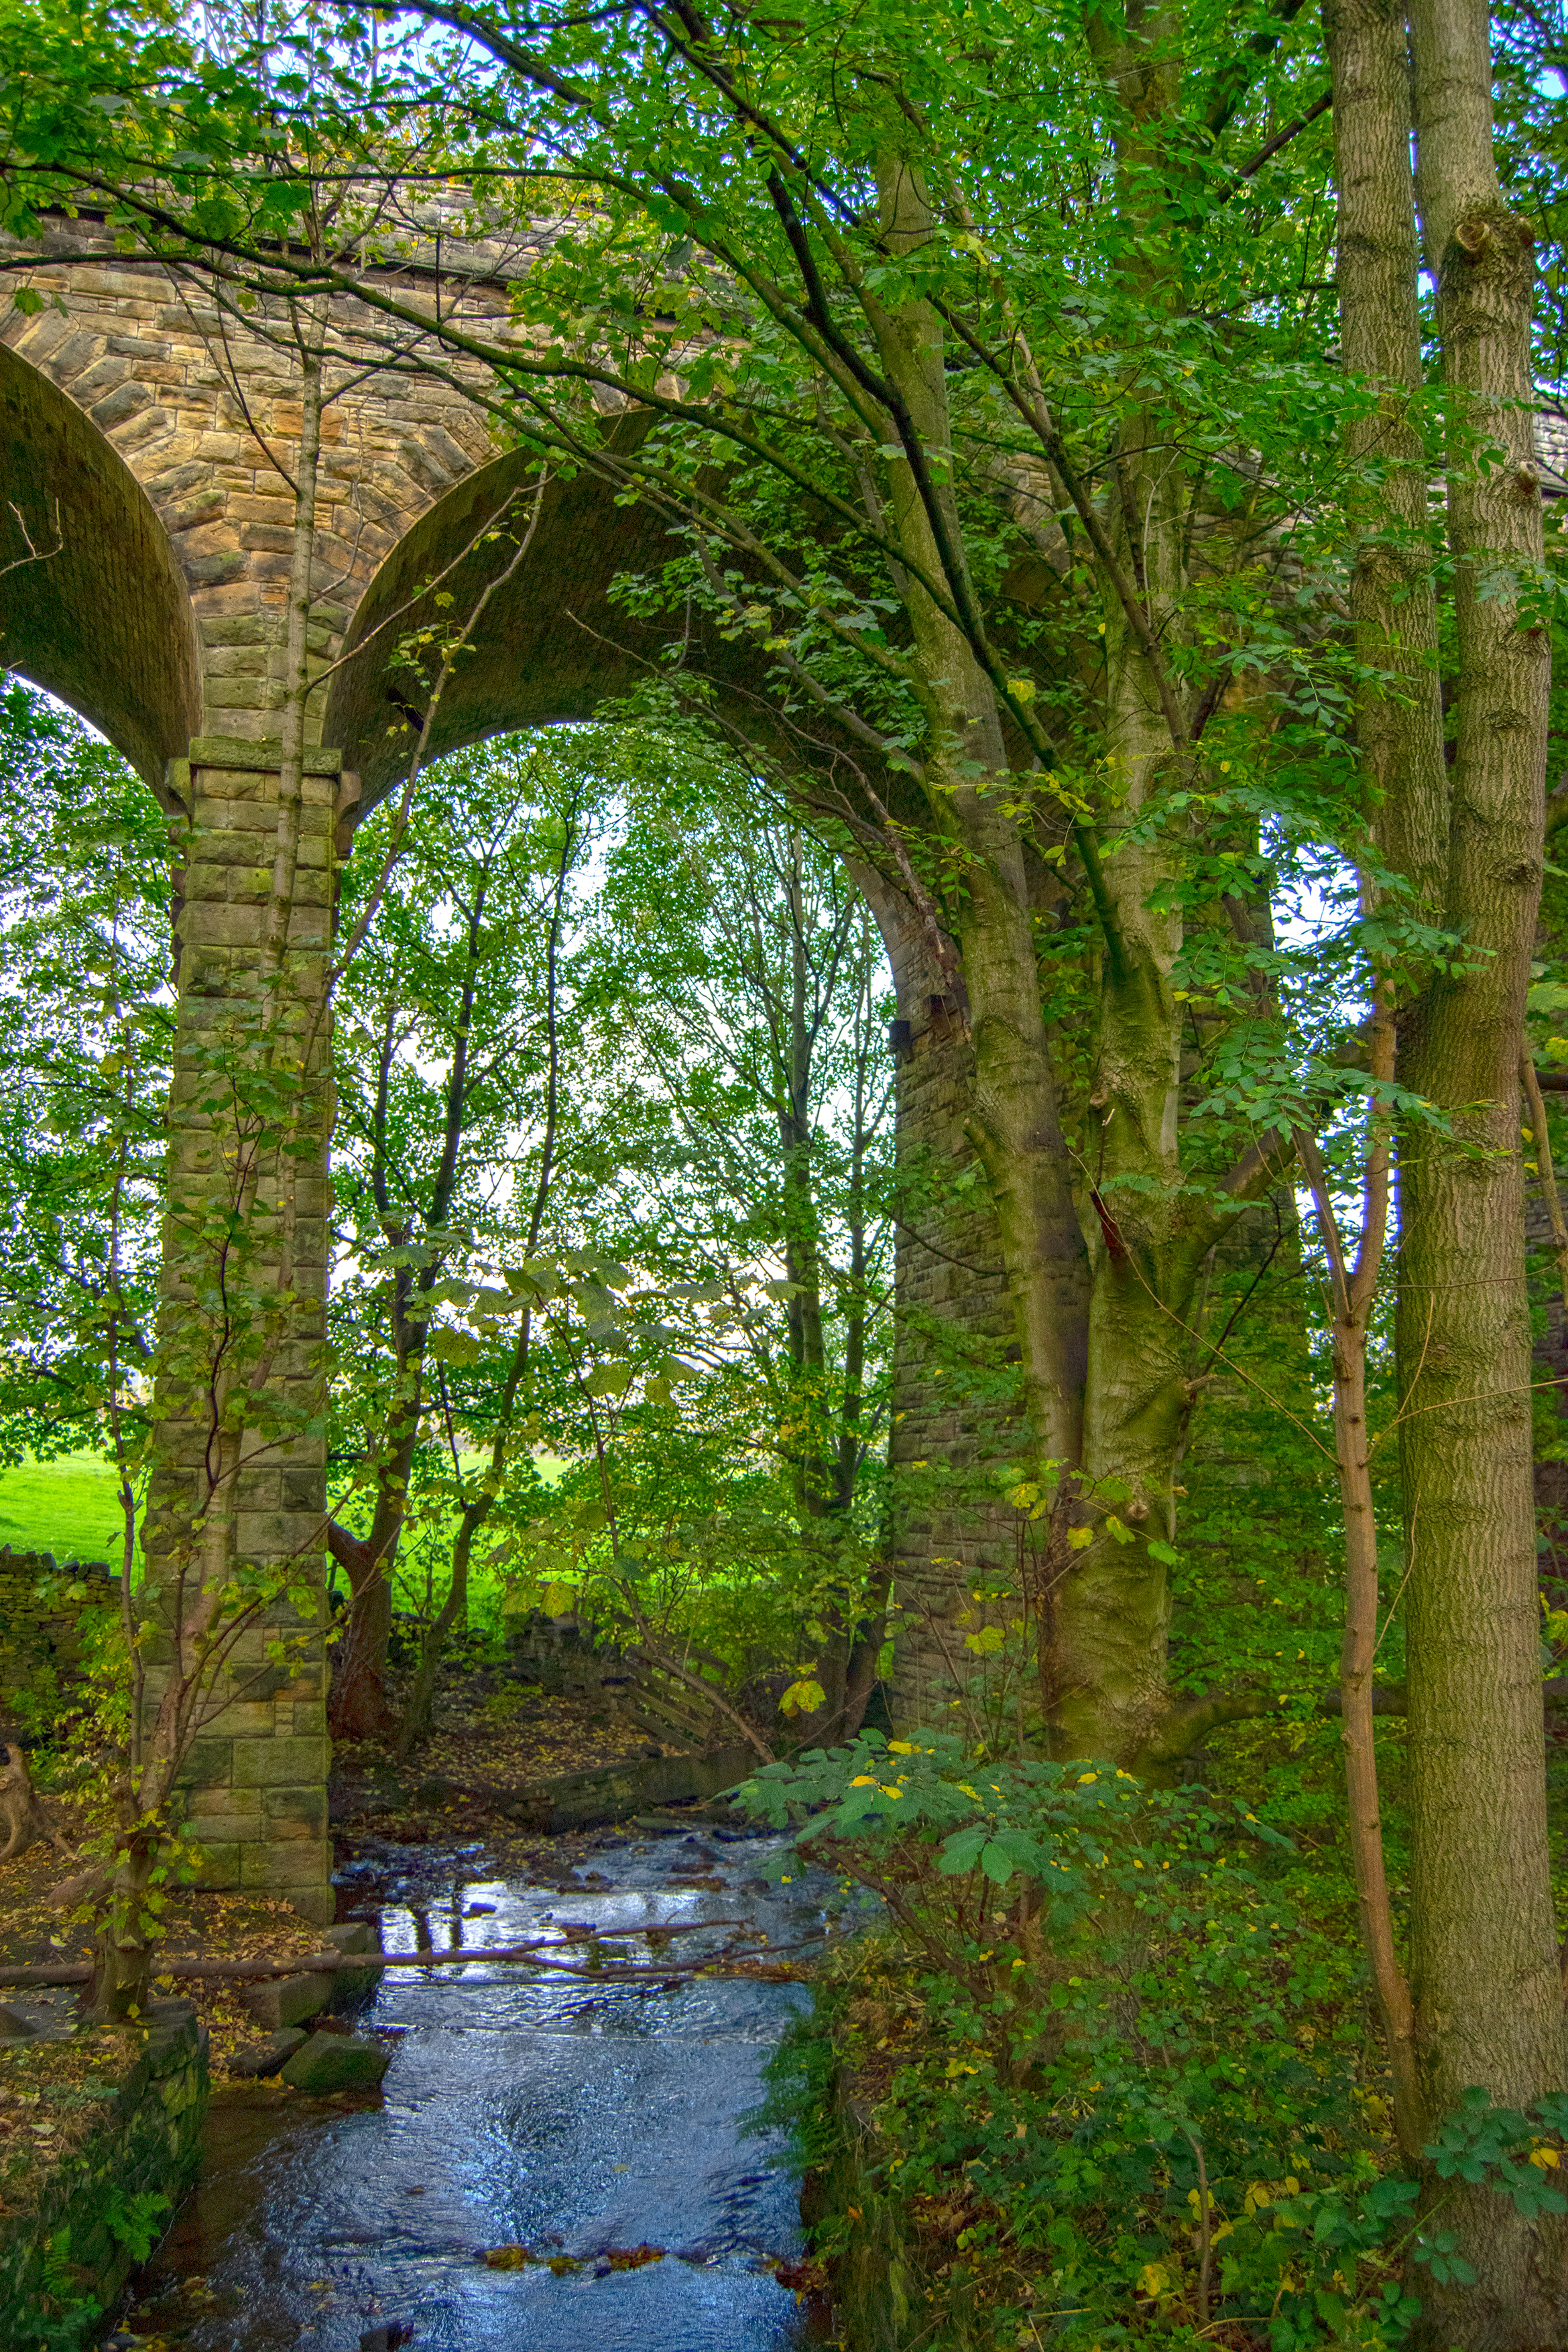 Holywell Brook under the Arch.